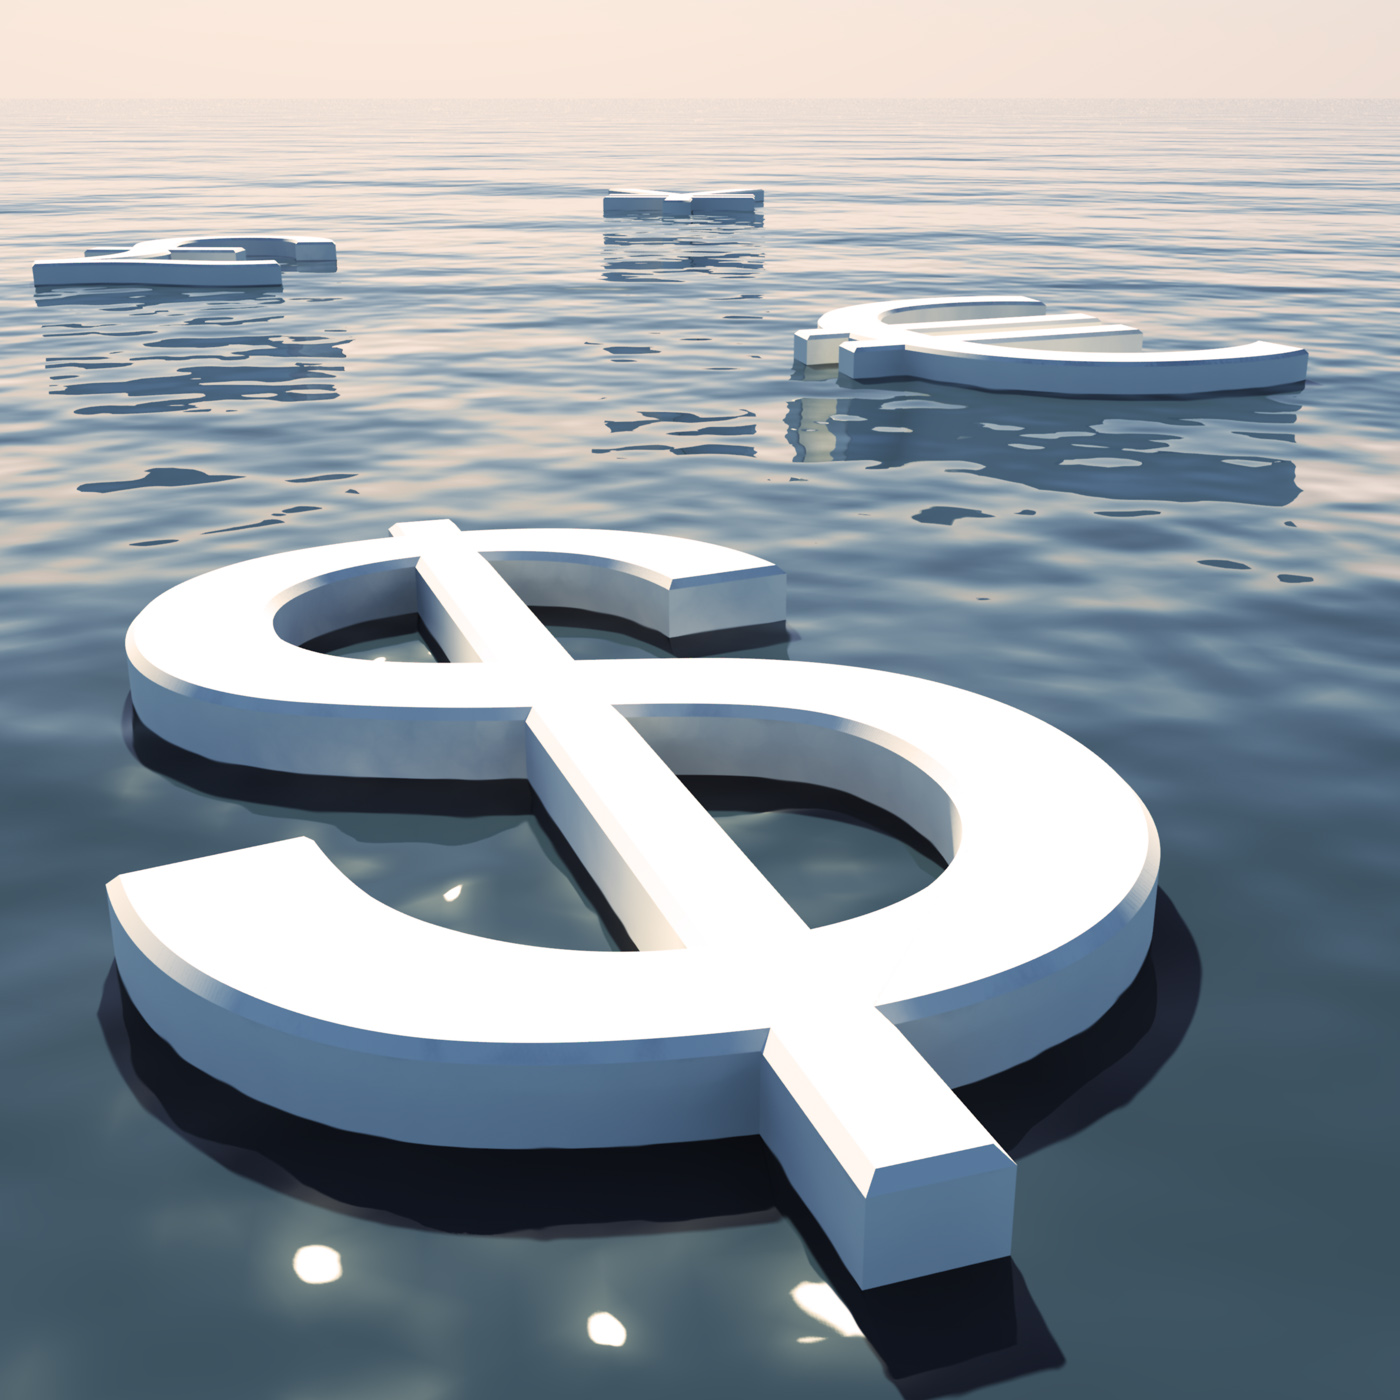 Dollar Floating And Currencies Going Away Showing Money Exchange Or Fo, Icon, Sign, Sea, Savings, HQ Photo